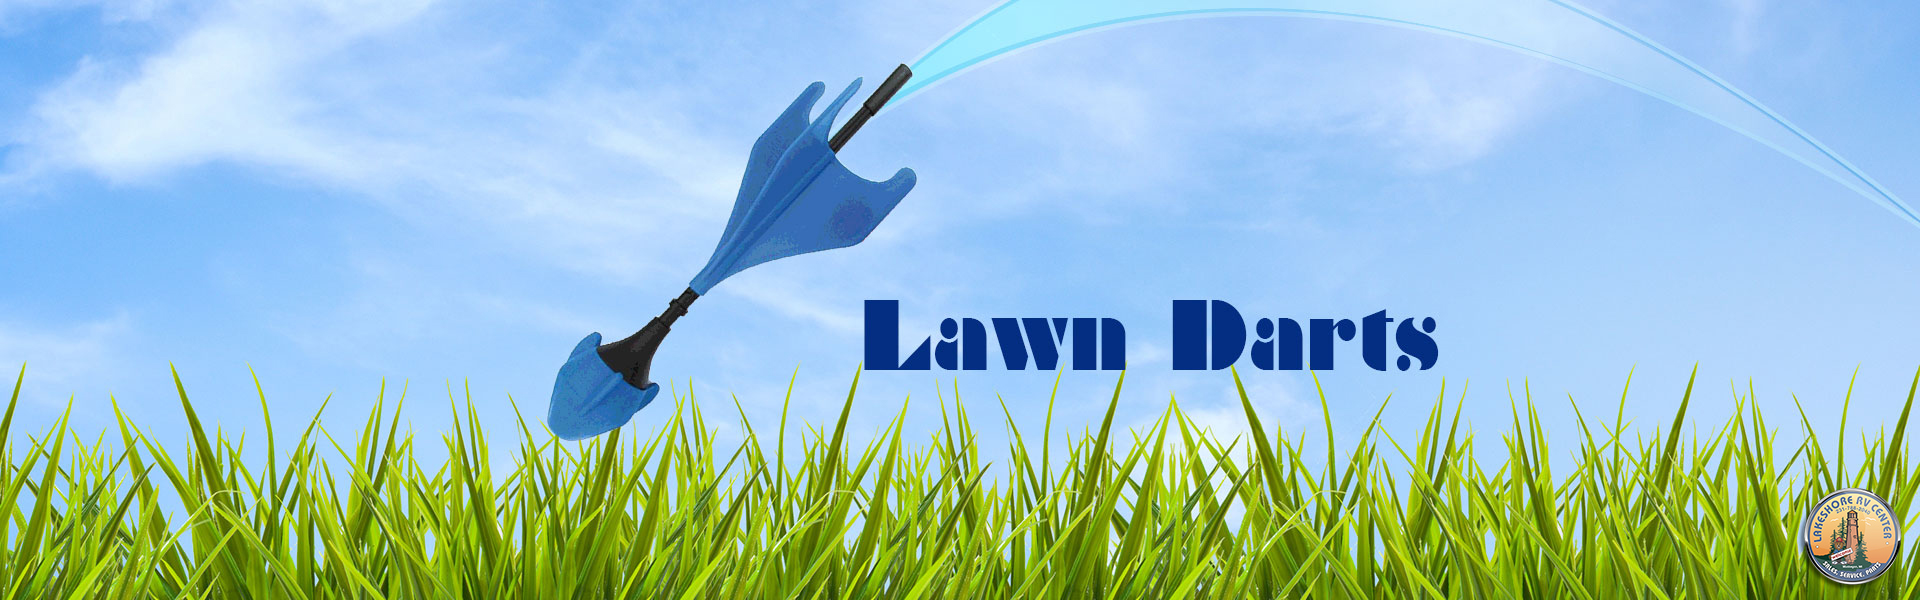 LSRV-Lawn-Darts-HI copy